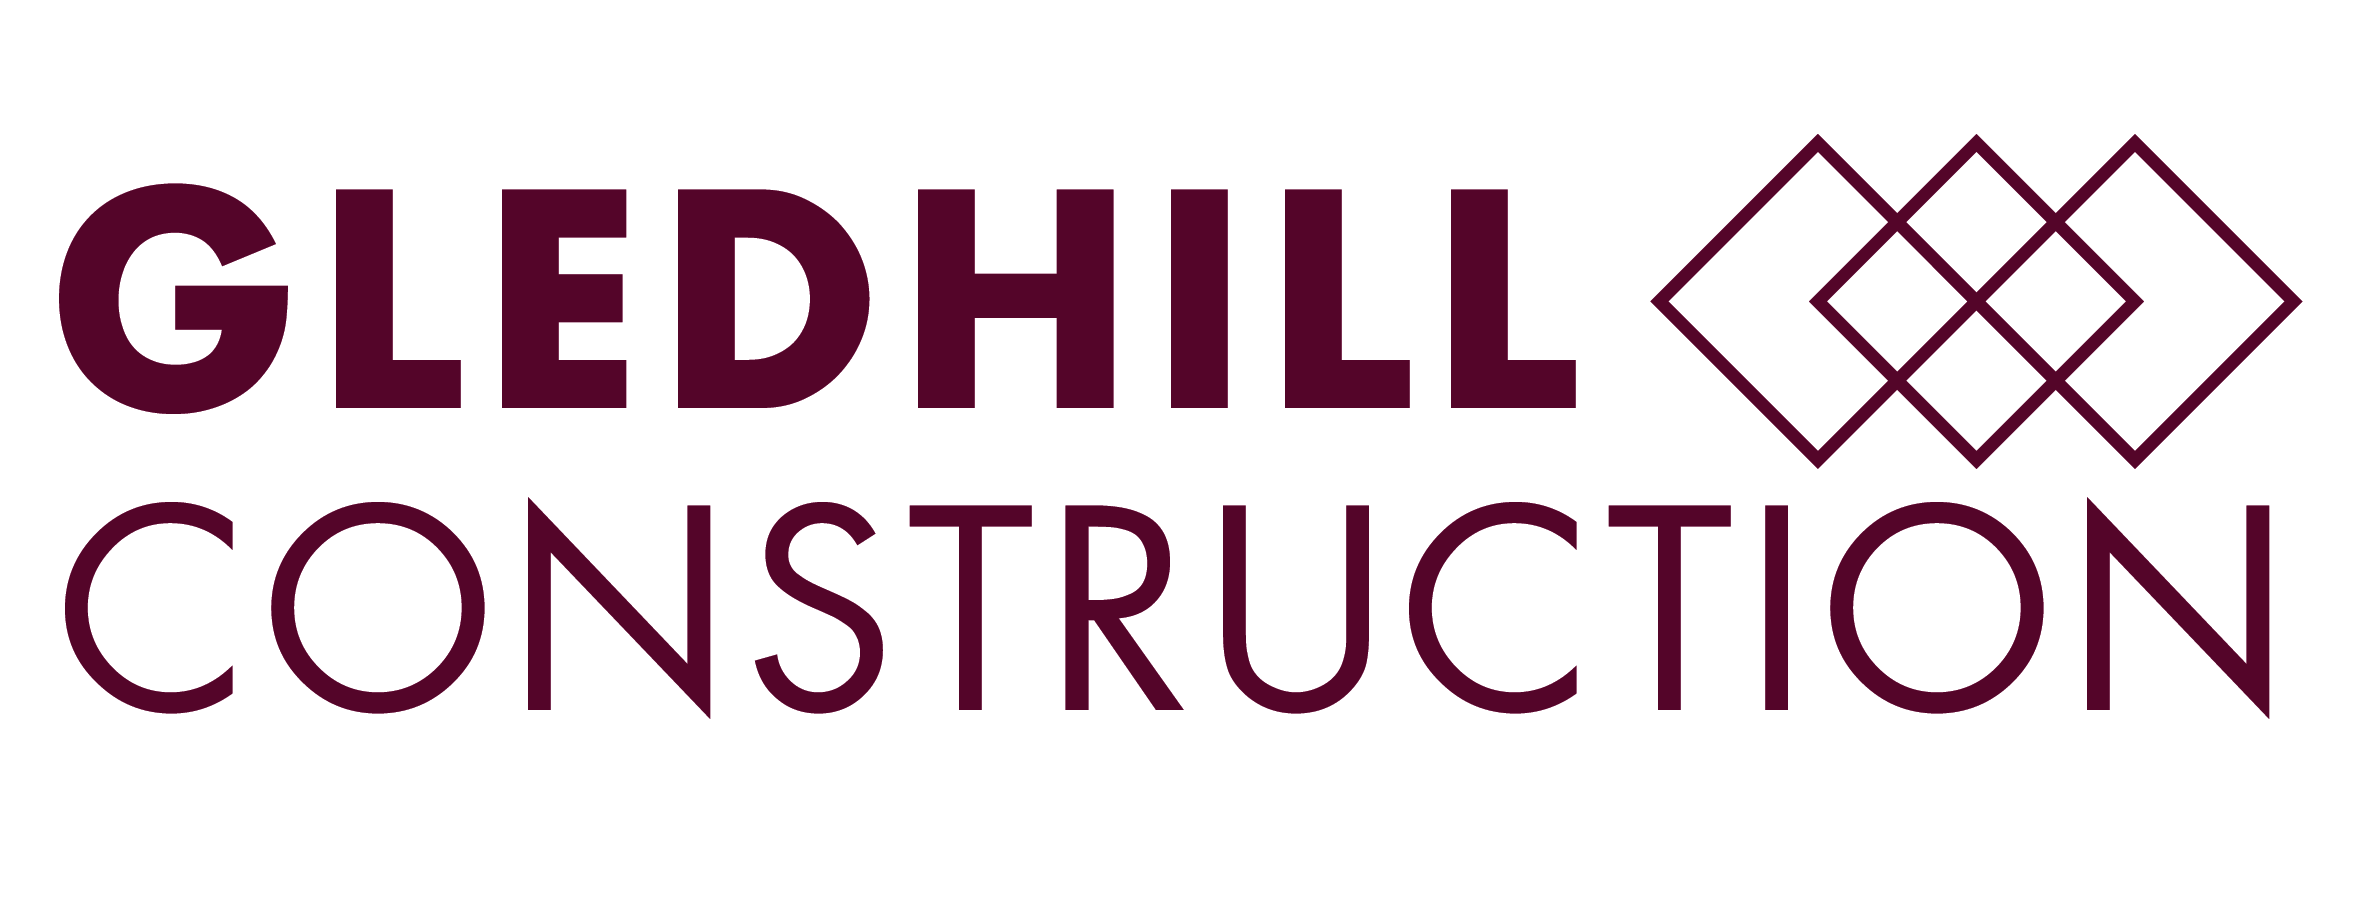 Gledhill Construction